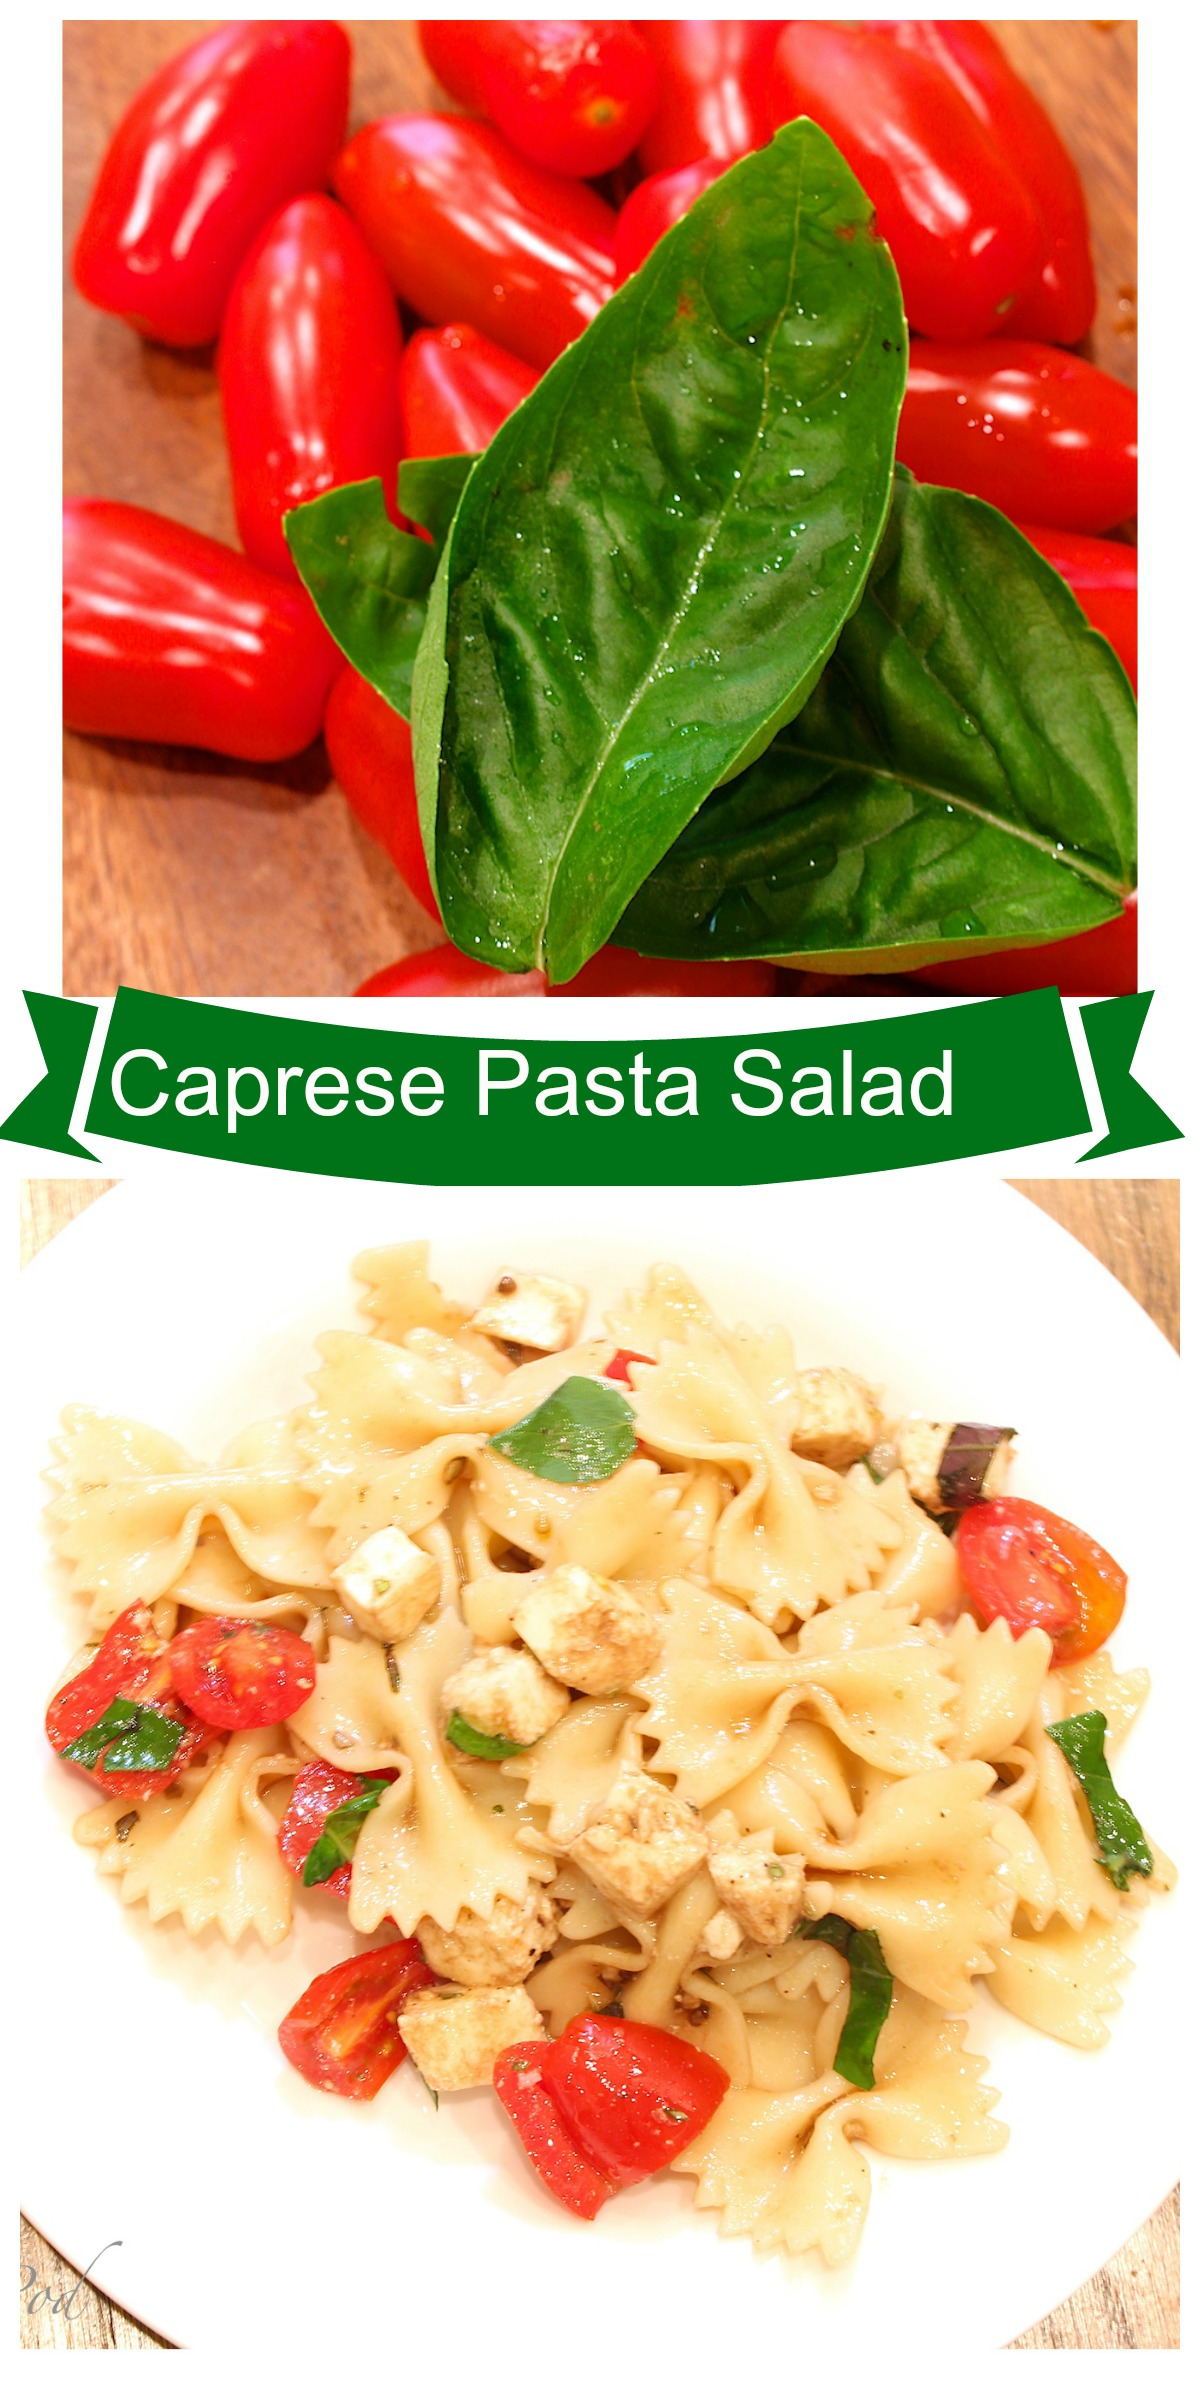 Caprese Pasta Salad - Perfect Summertime Recipe. Wonderful side dish or main dish.